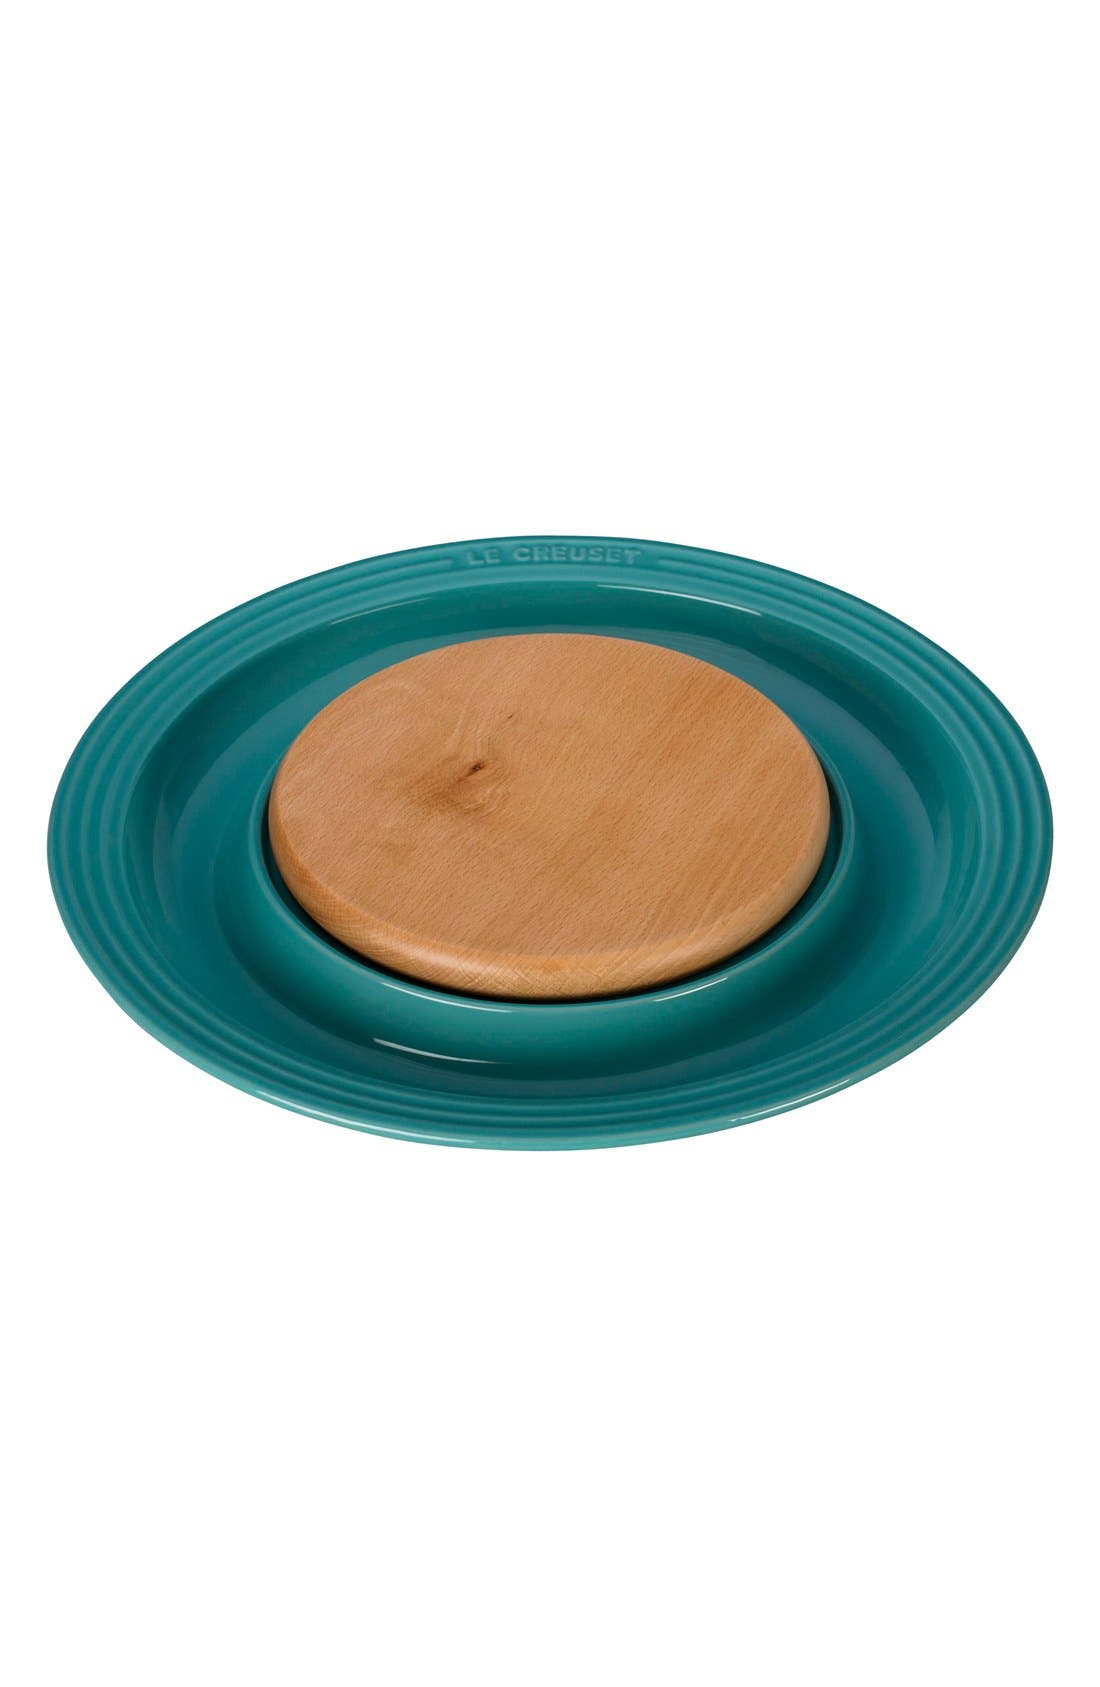 Alternate Image 1 Selected - Le Creuset Round Platter with Cutting Board